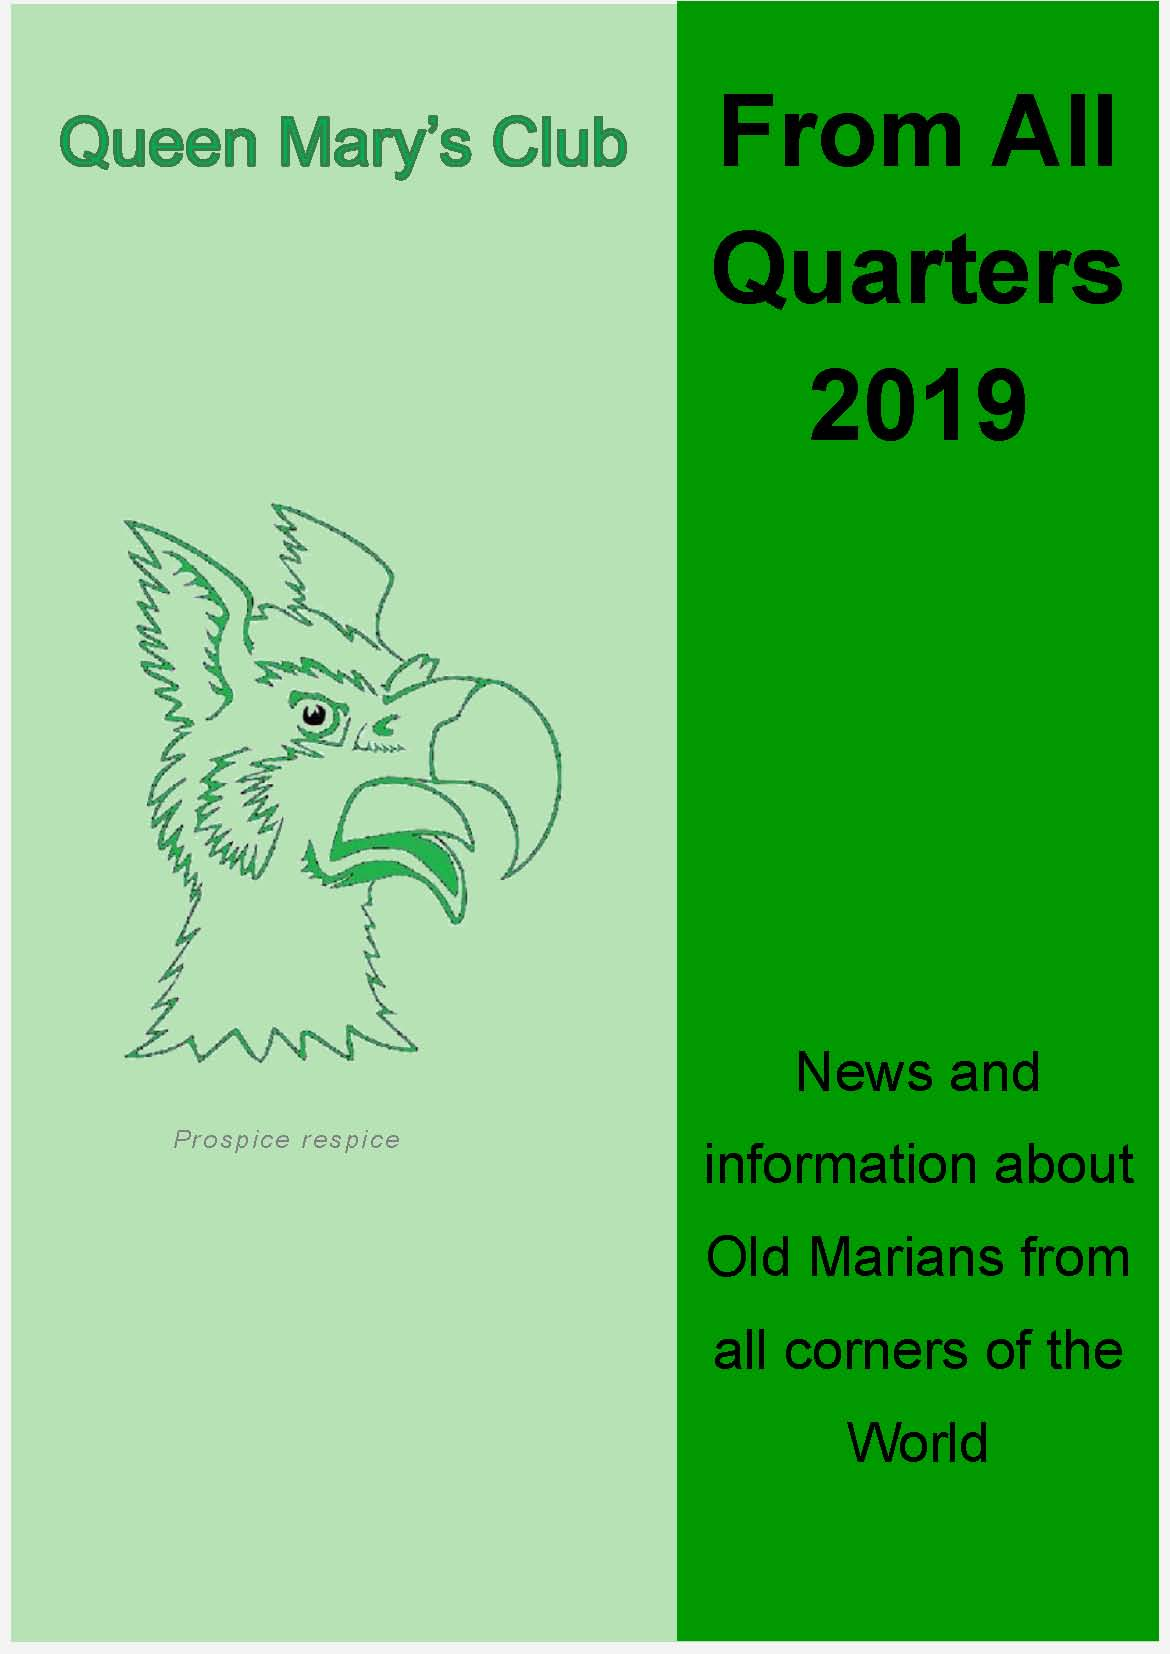 From All Quarters 2019